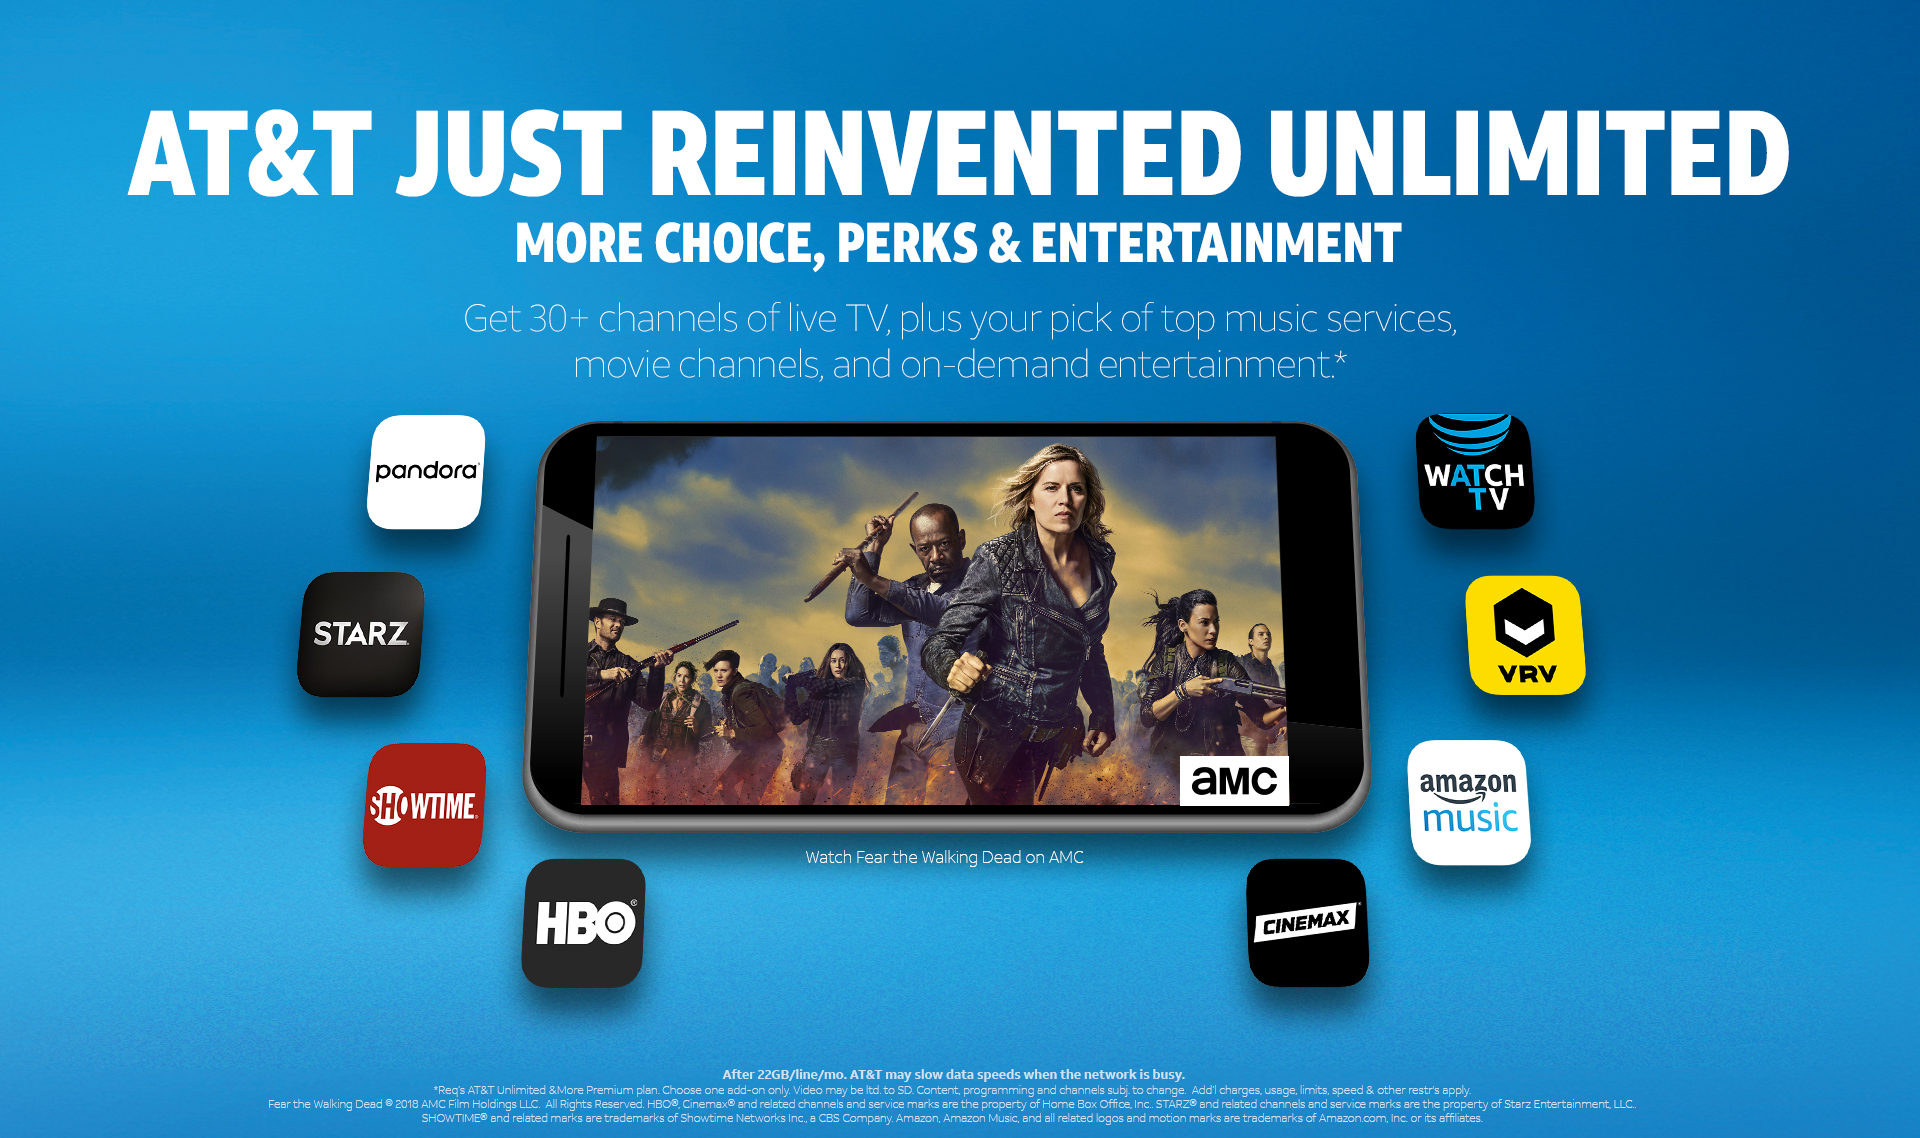 WatchTV streaming service to launch next week alongside new AT&T wireless plans